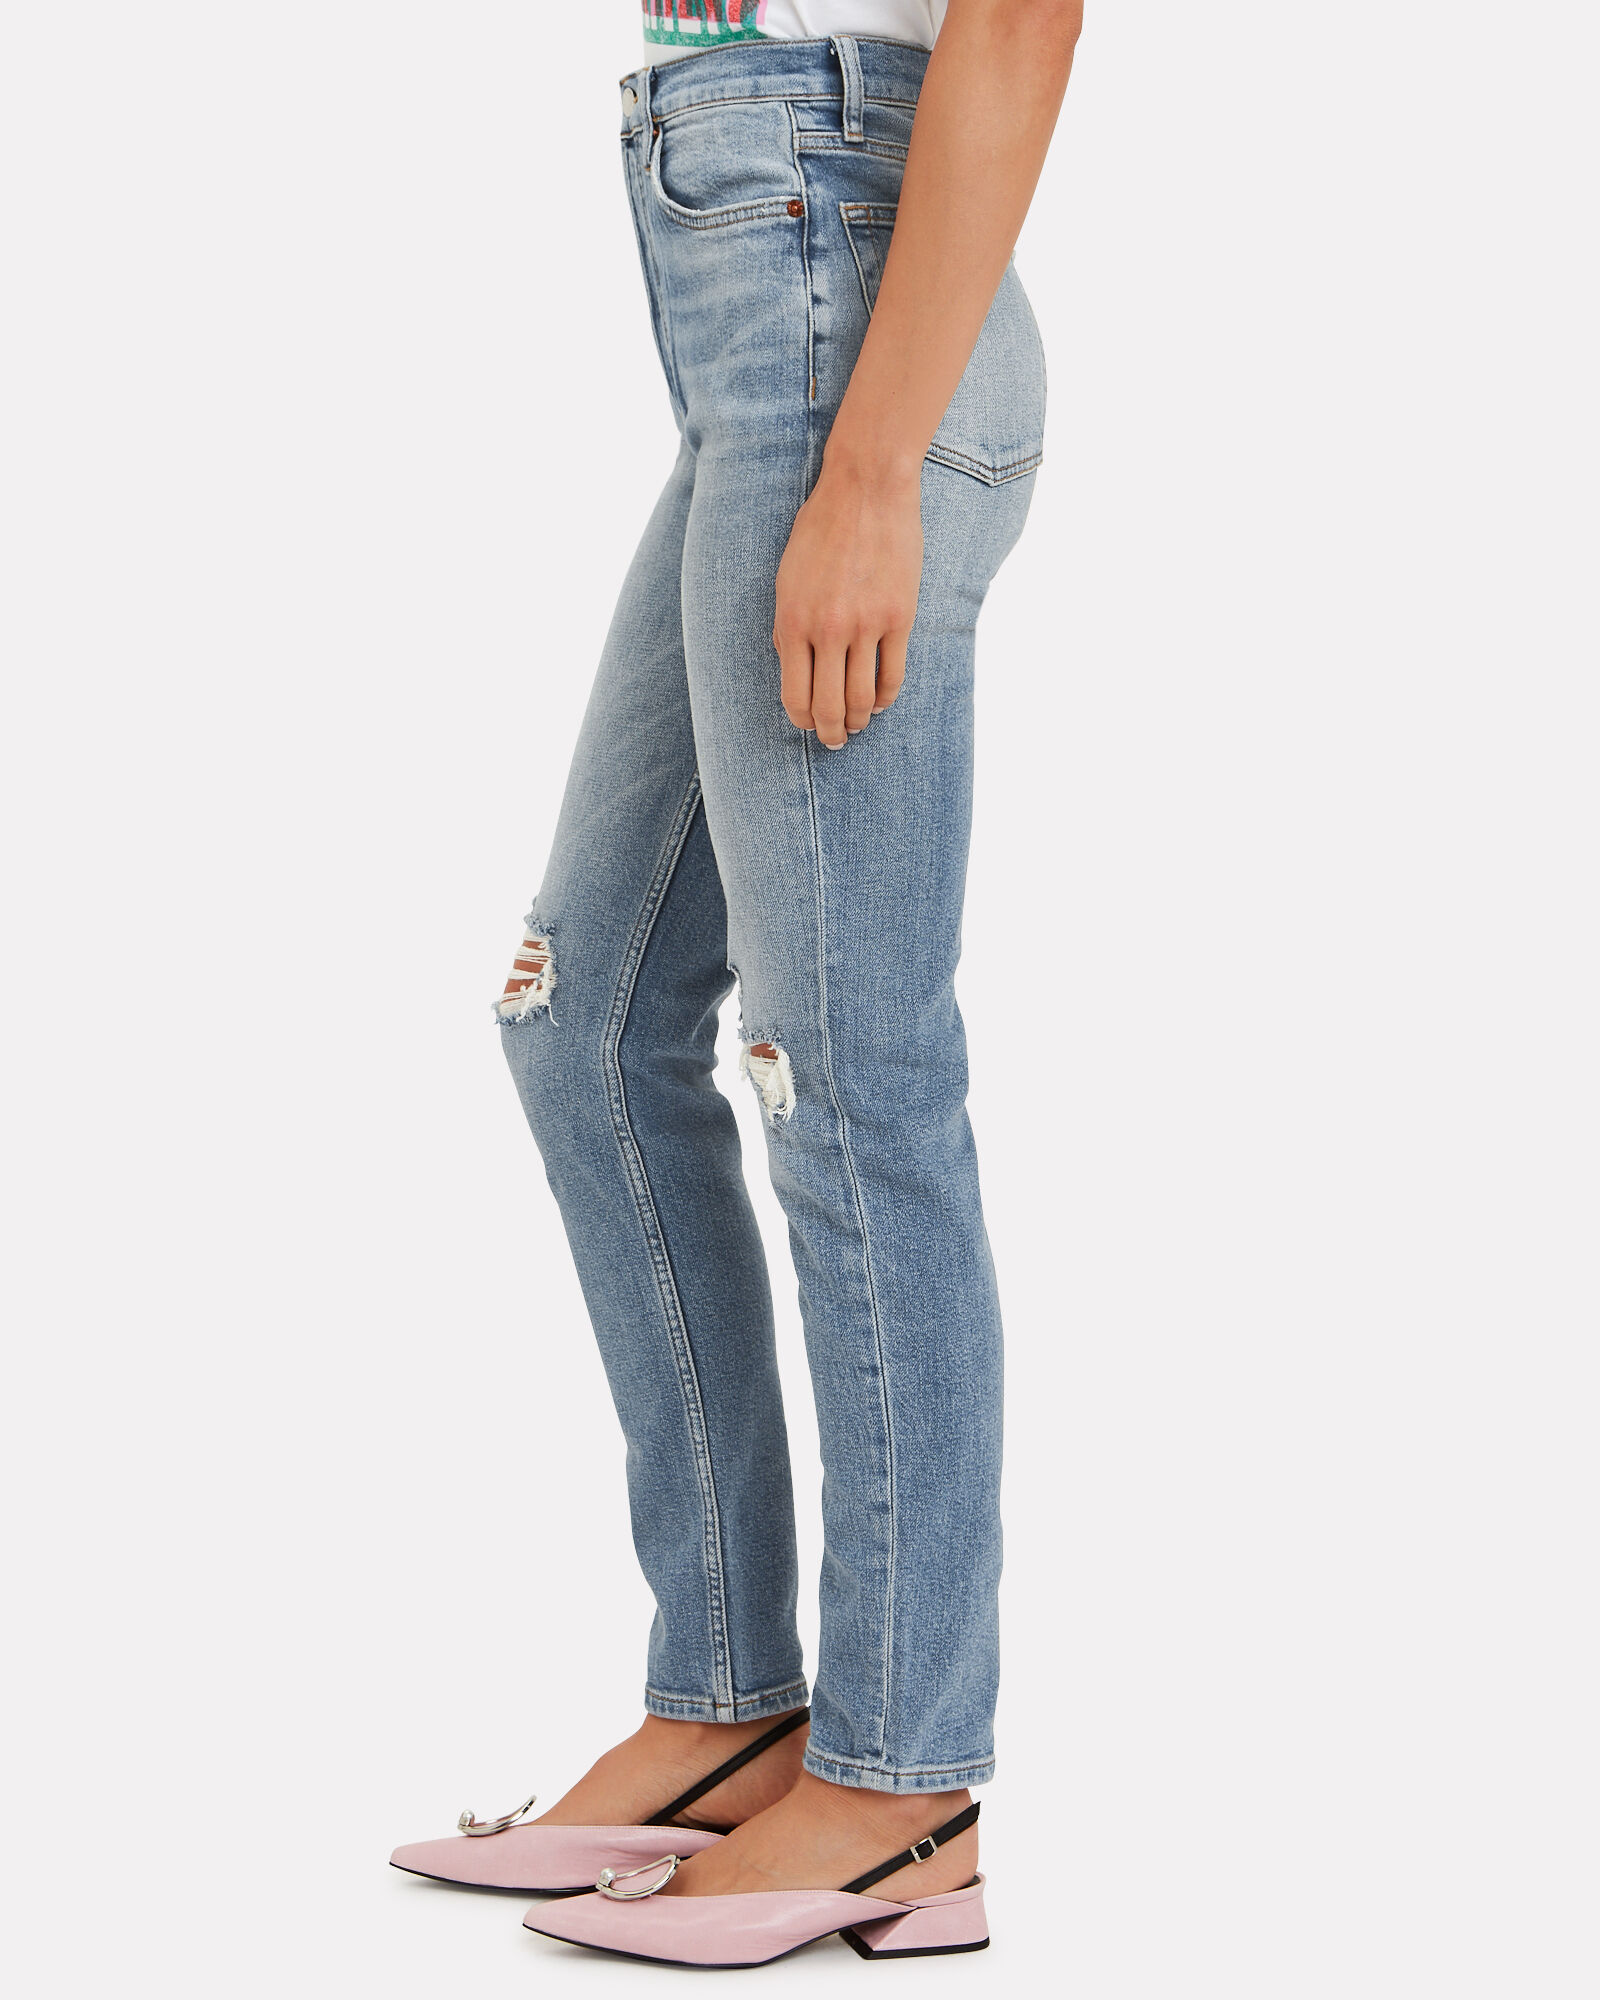 Ultra High-Rise Stretch Jeans, MEDIUM WASH DENIM, hi-res